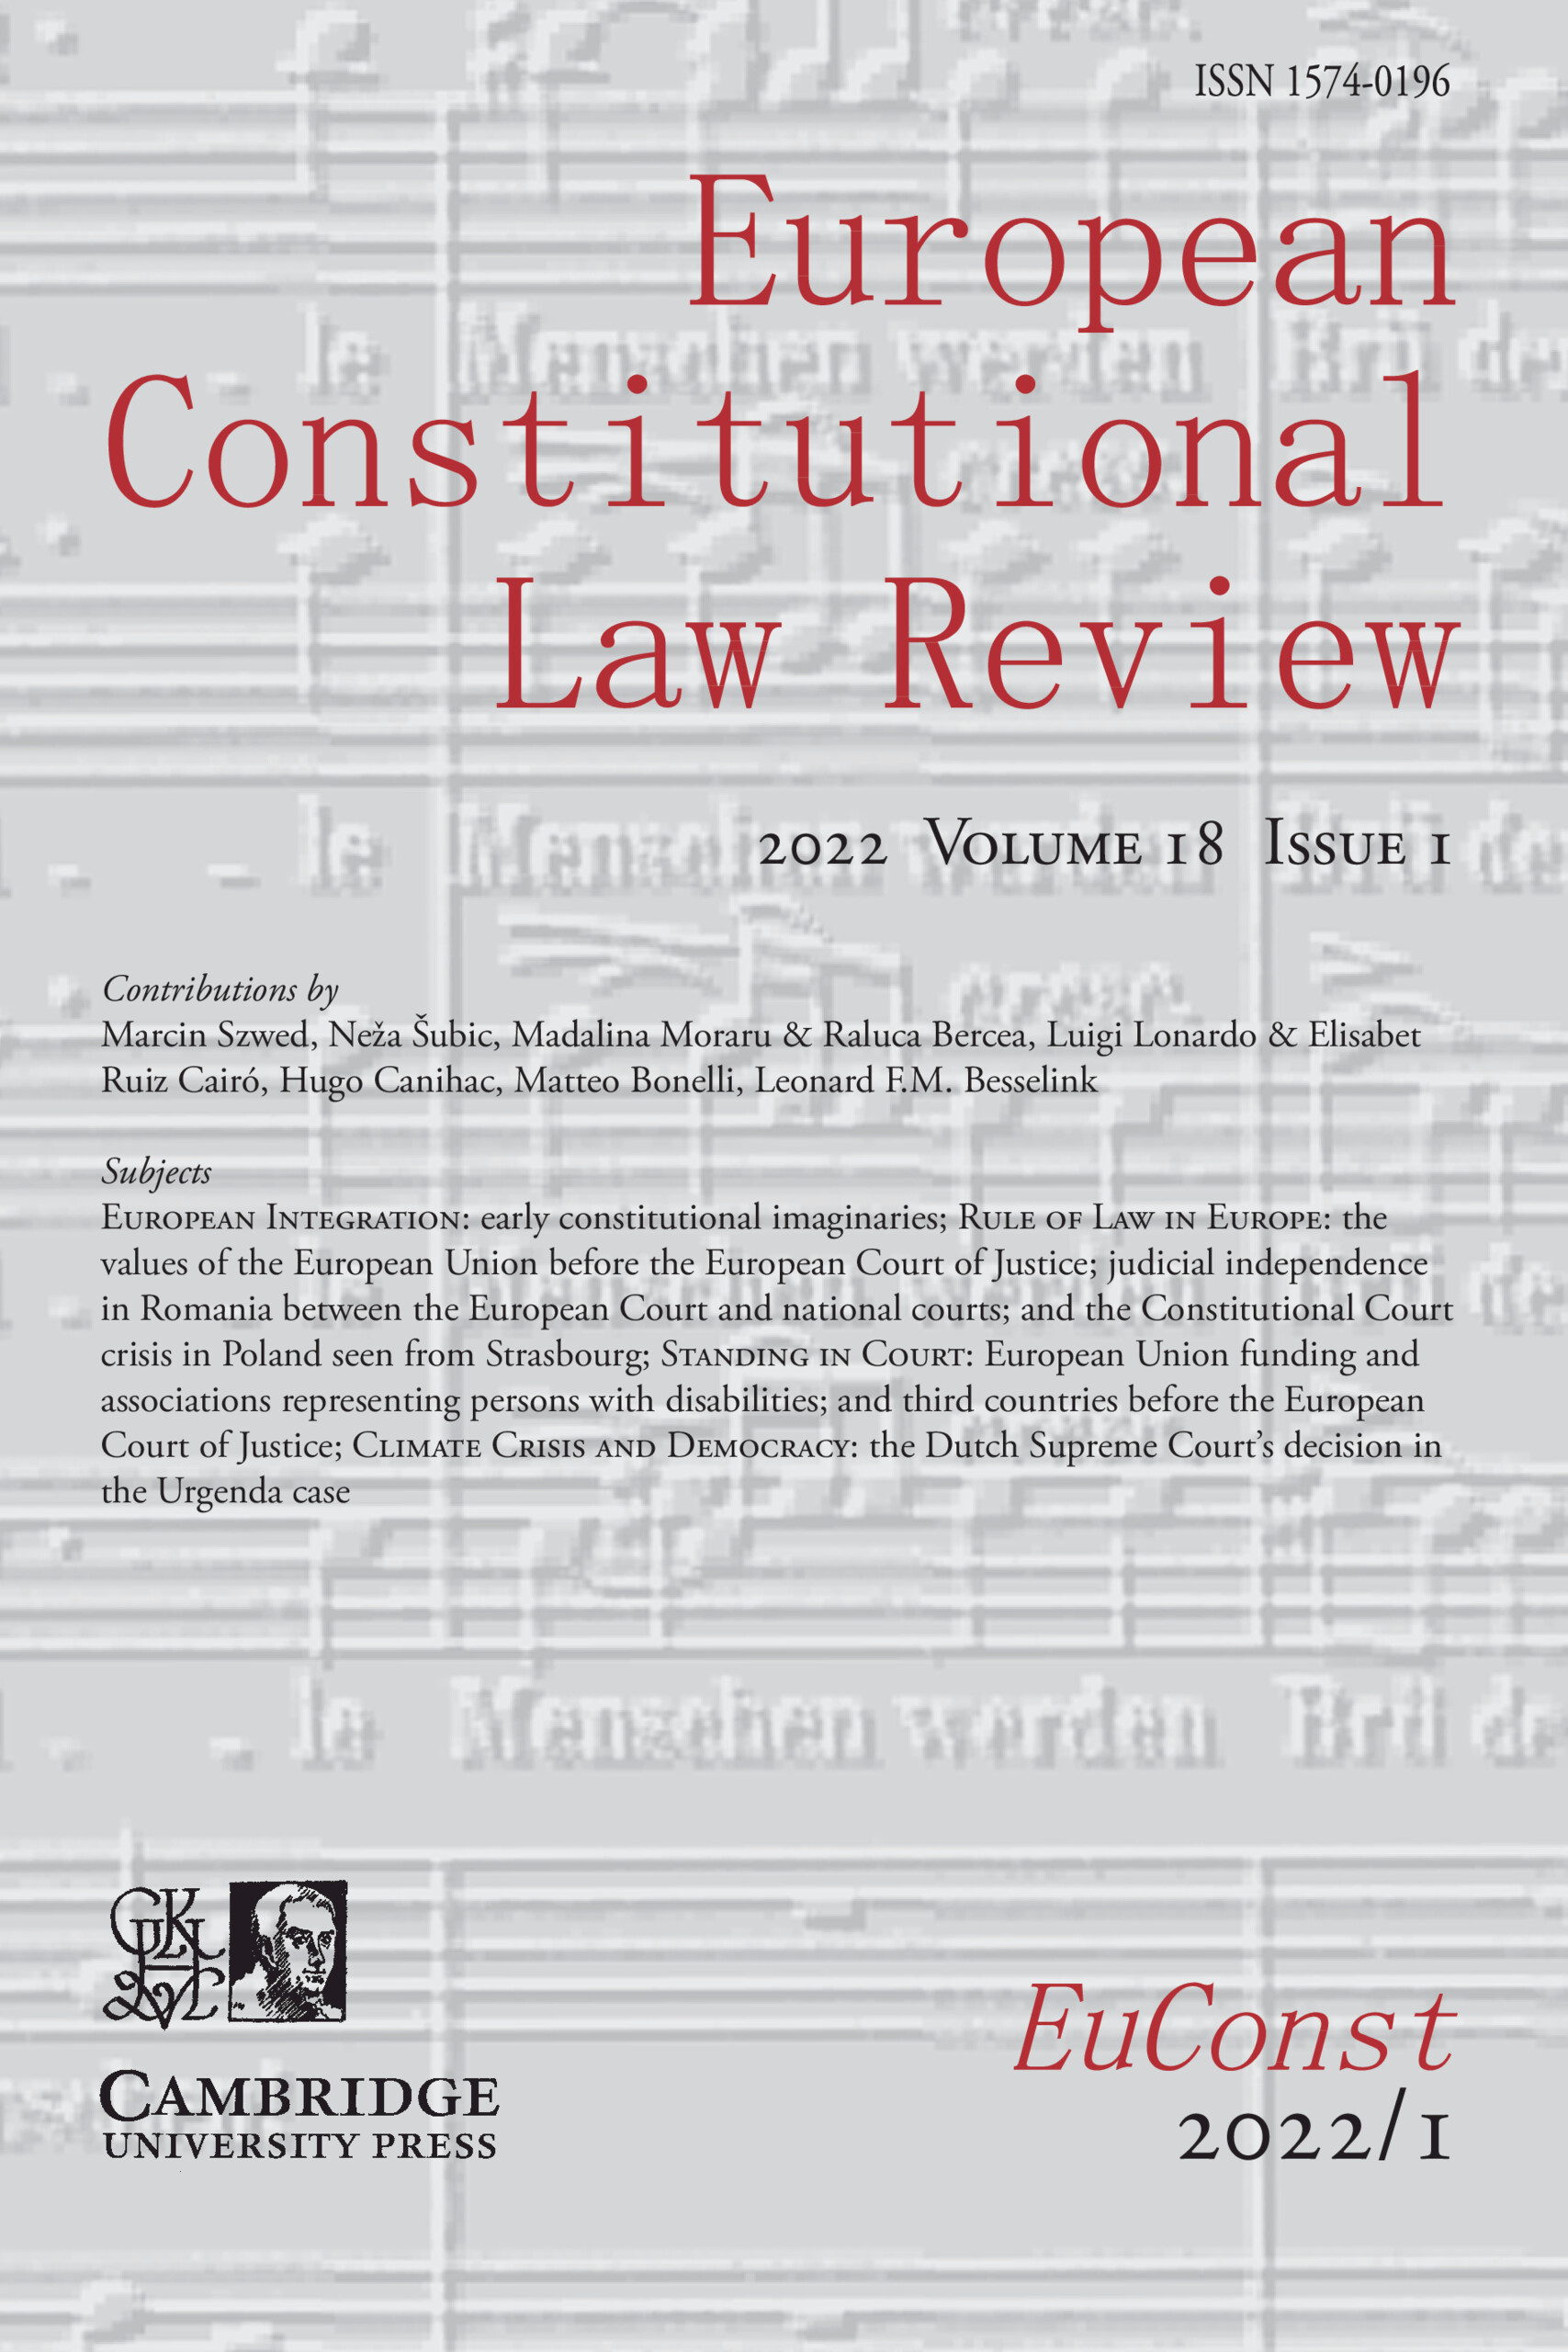 https://static.cambridge.org/covers/ECL_0_0_0/european_constitutional%20law%20review.jpg?send-full-size-image=true